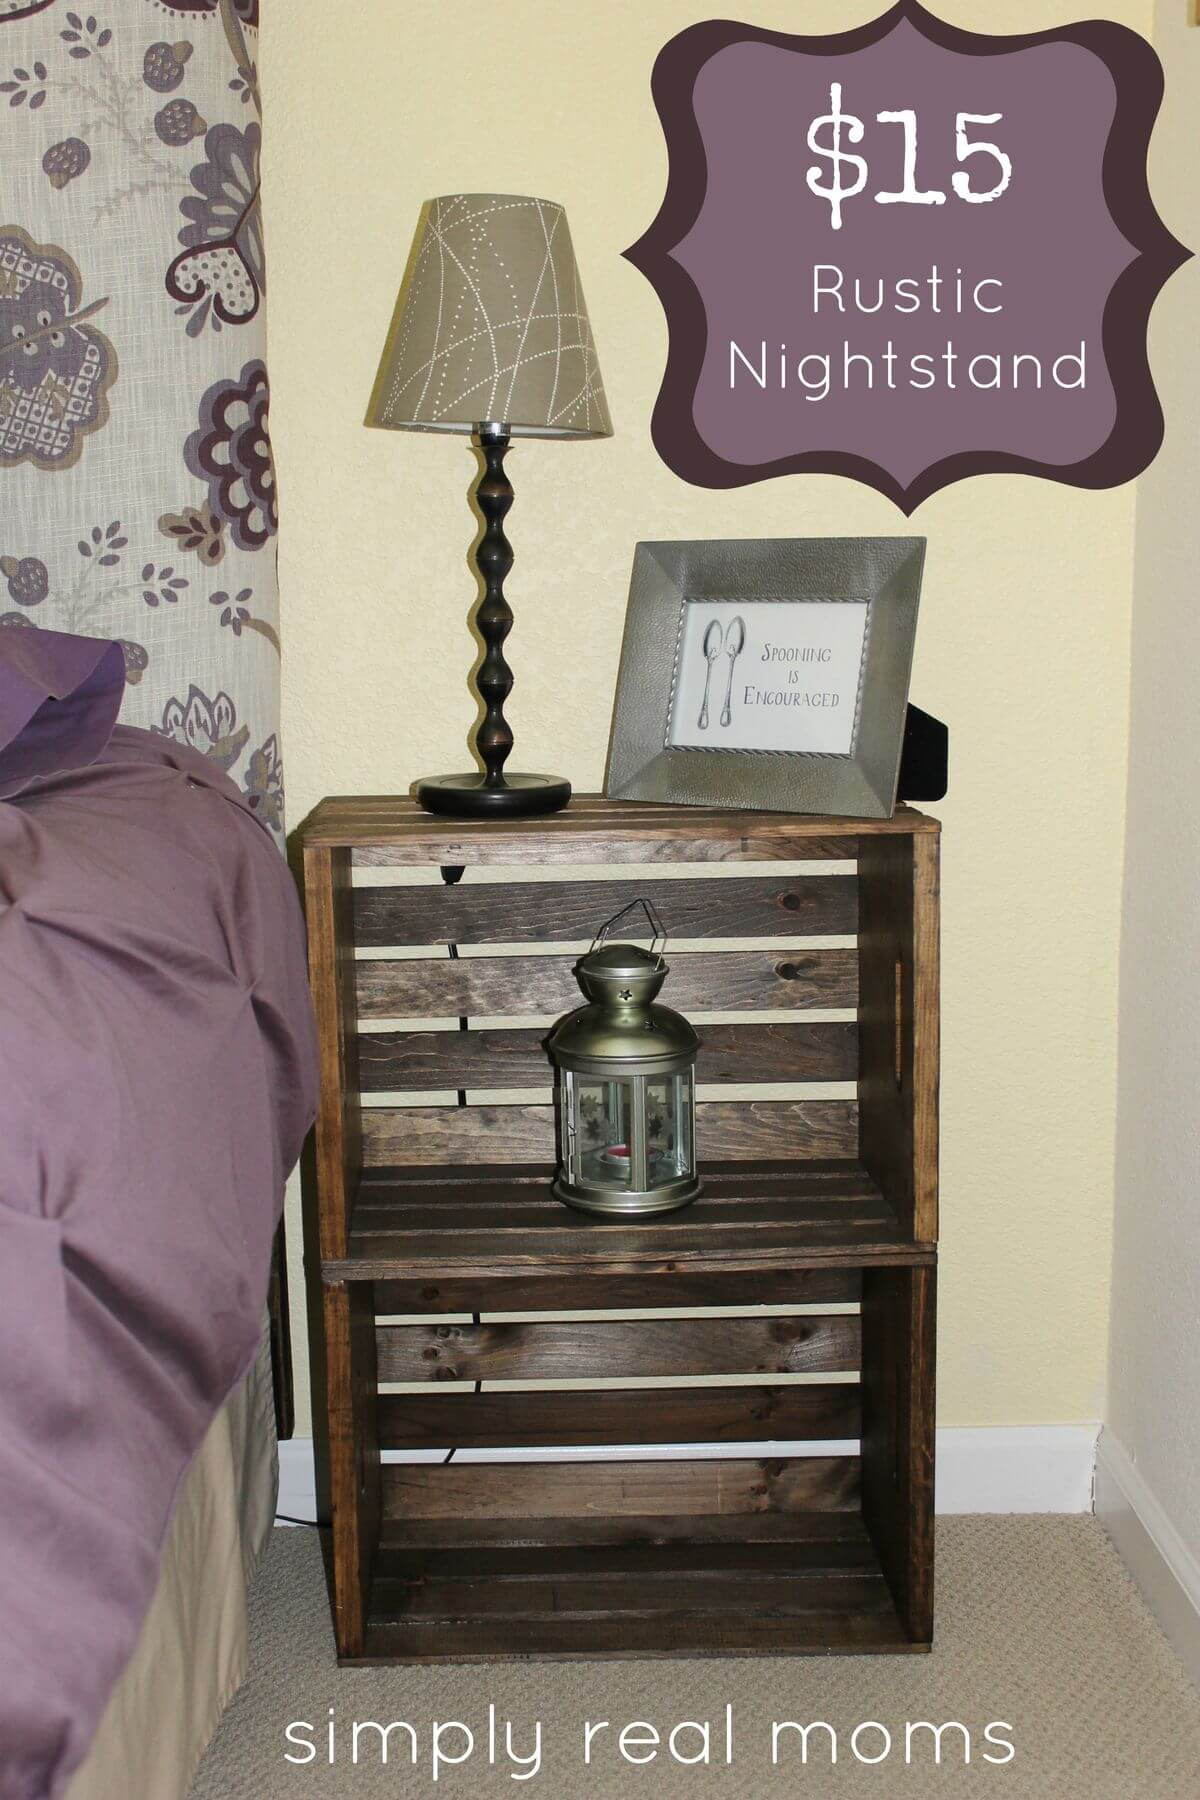 Rustic Nightstand with Extra Storage